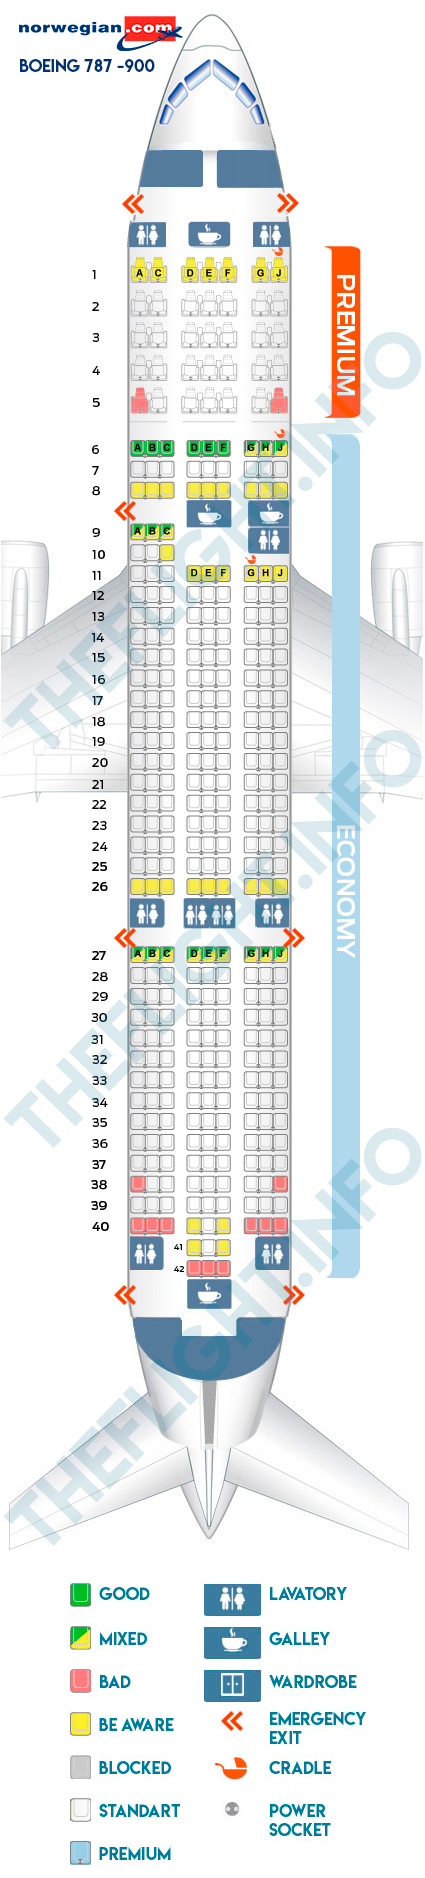 Seat map Boeing 787-900 Norwegian